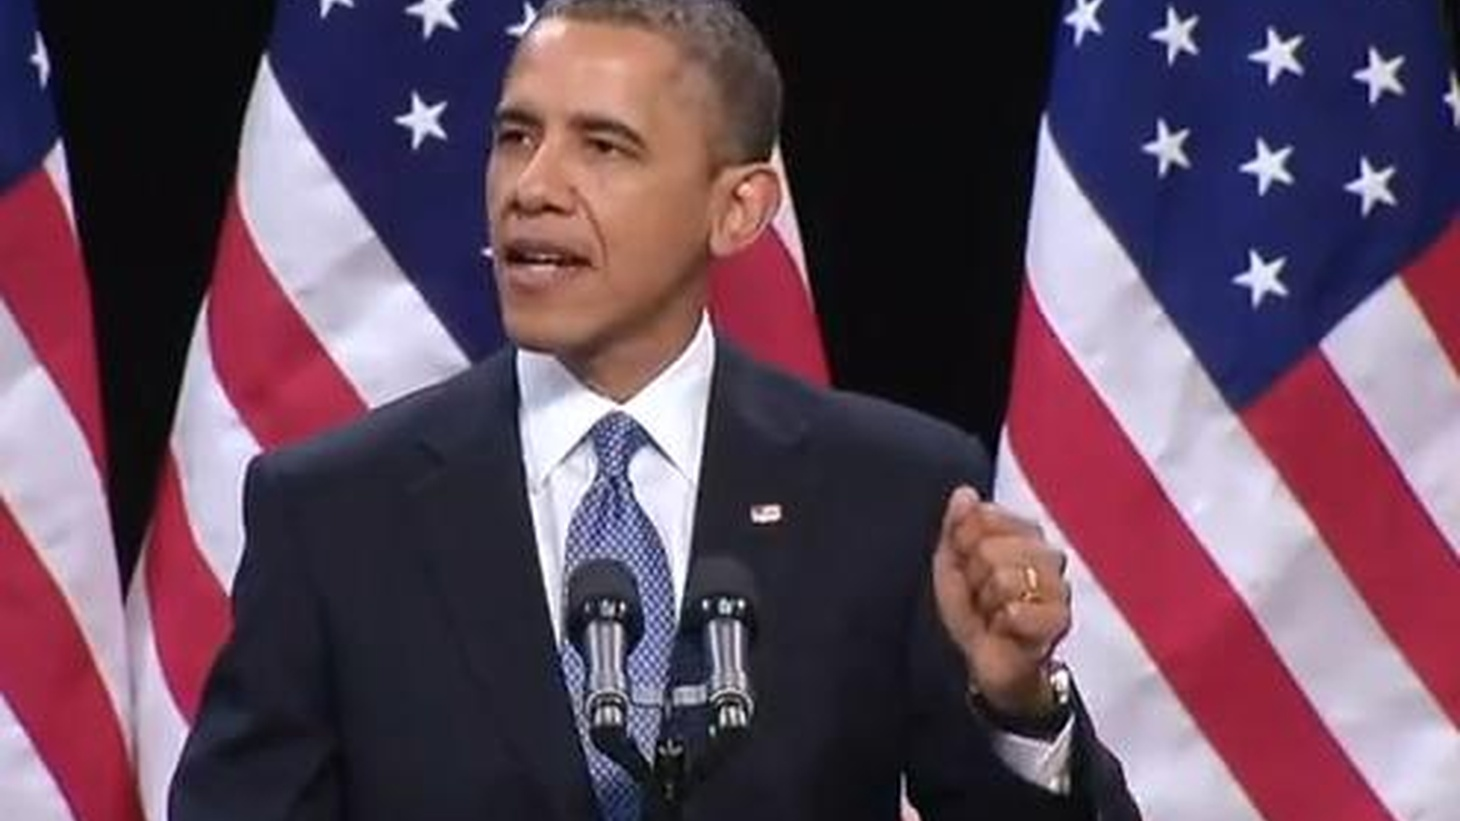 President Obama speaks on the need to fix the broken immigration system. Tuesday, January 29 at 12:00pm PDT.